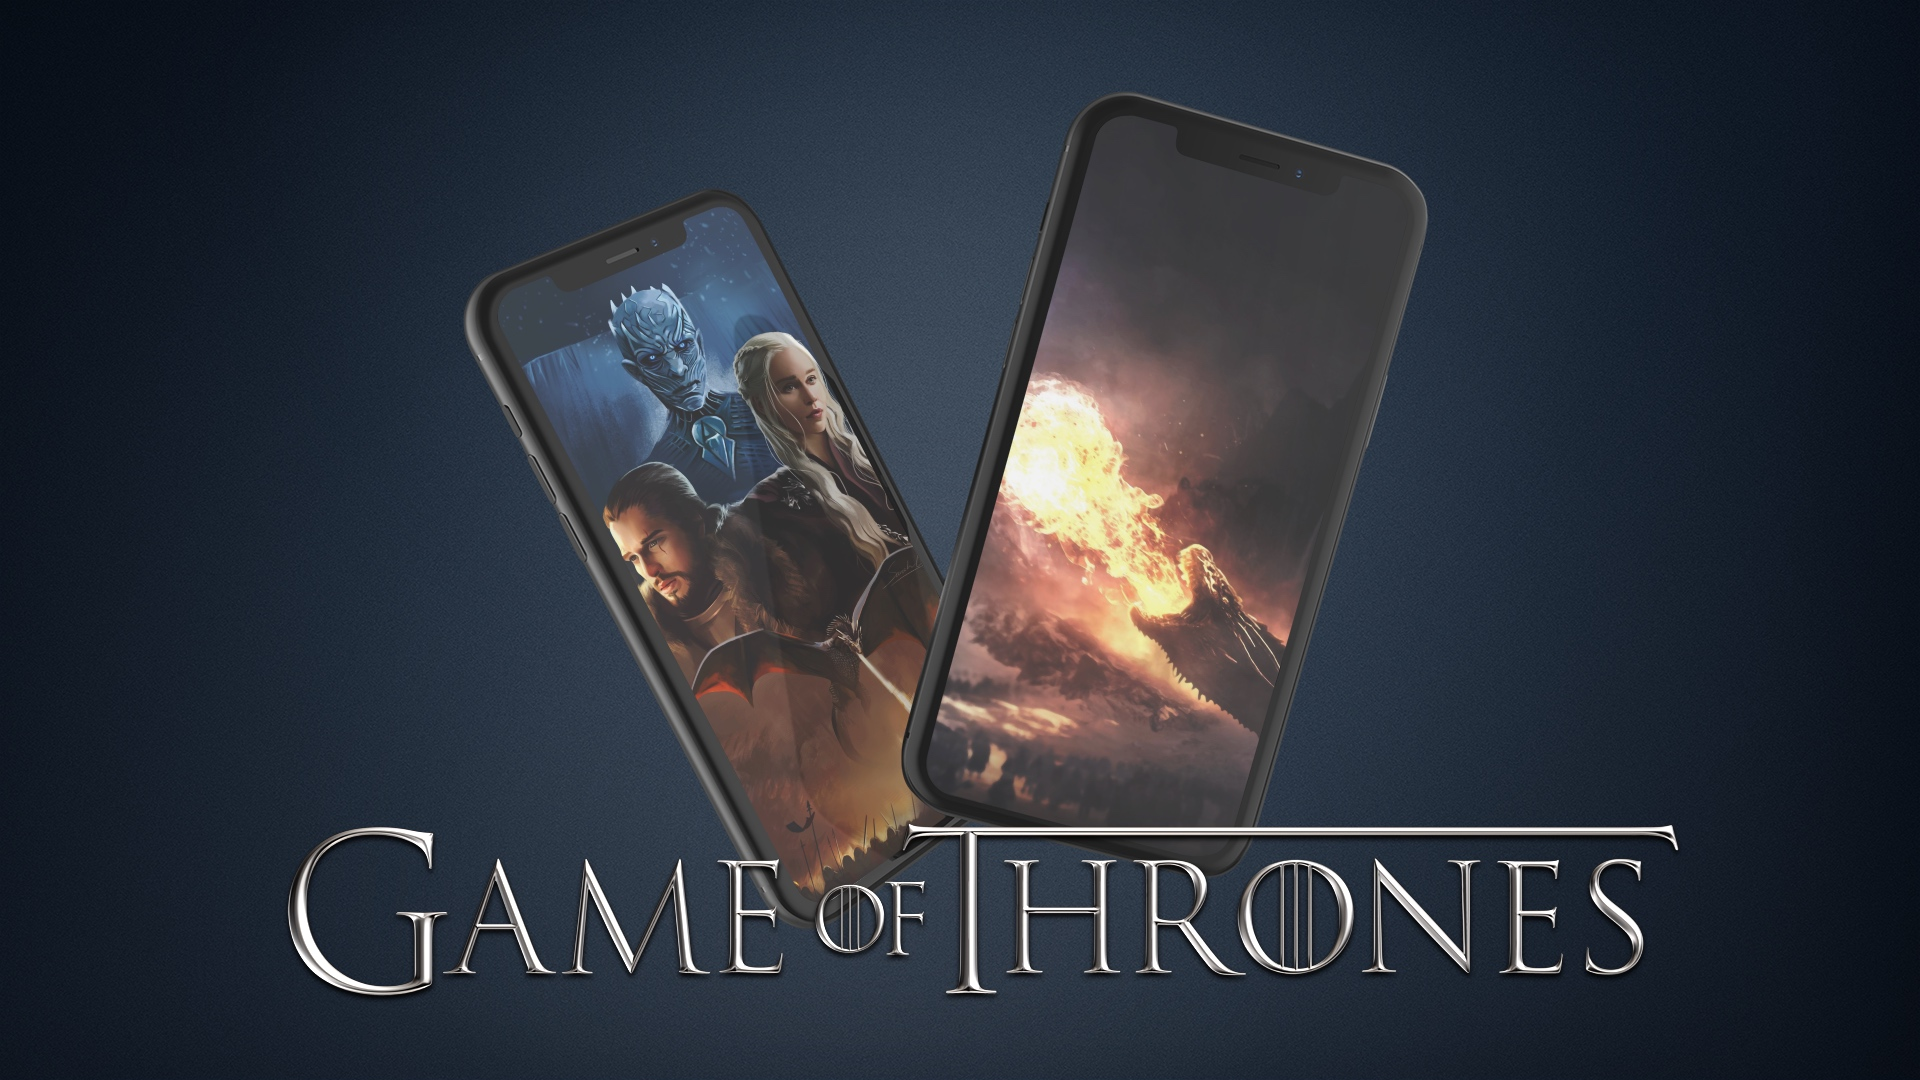 Game Of Thrones Iphone Wallpaper Battle For Winterfell